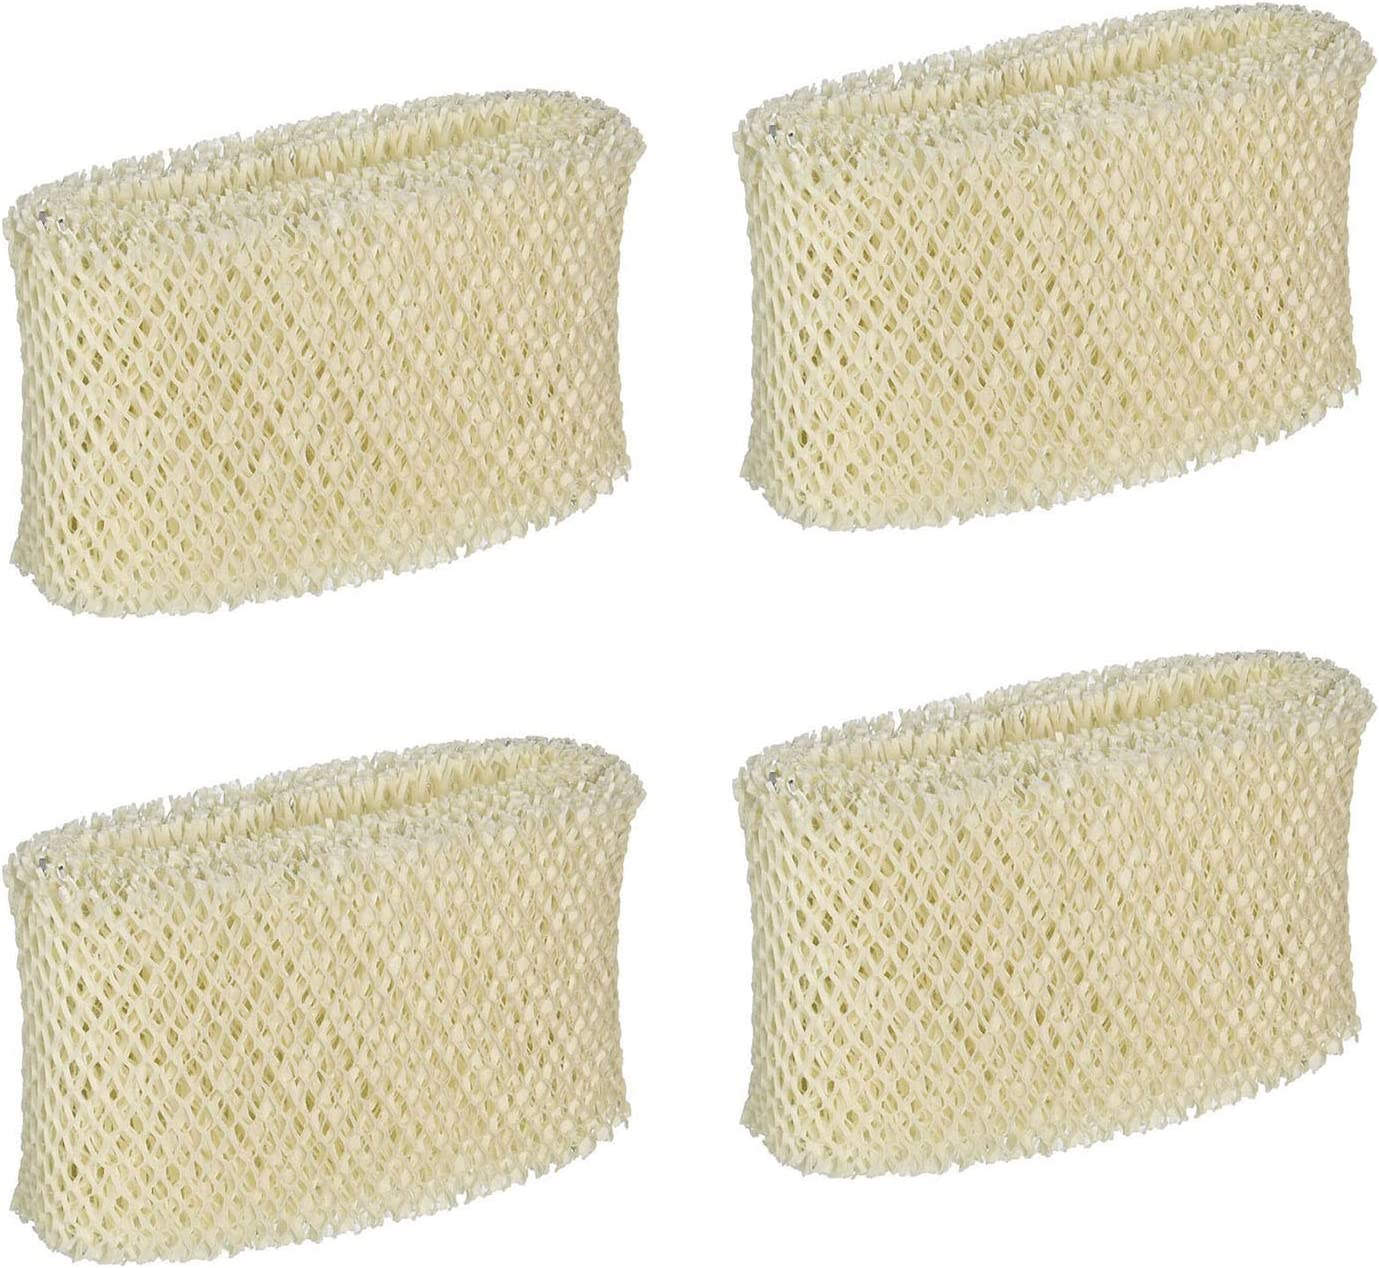 Ximoon Humidifier Filter Replacements for Vicks Kaz WF2, Fit Vicks V3500N, V3100, V3900 Series, V3700, Sunbeam 1118 Series 4